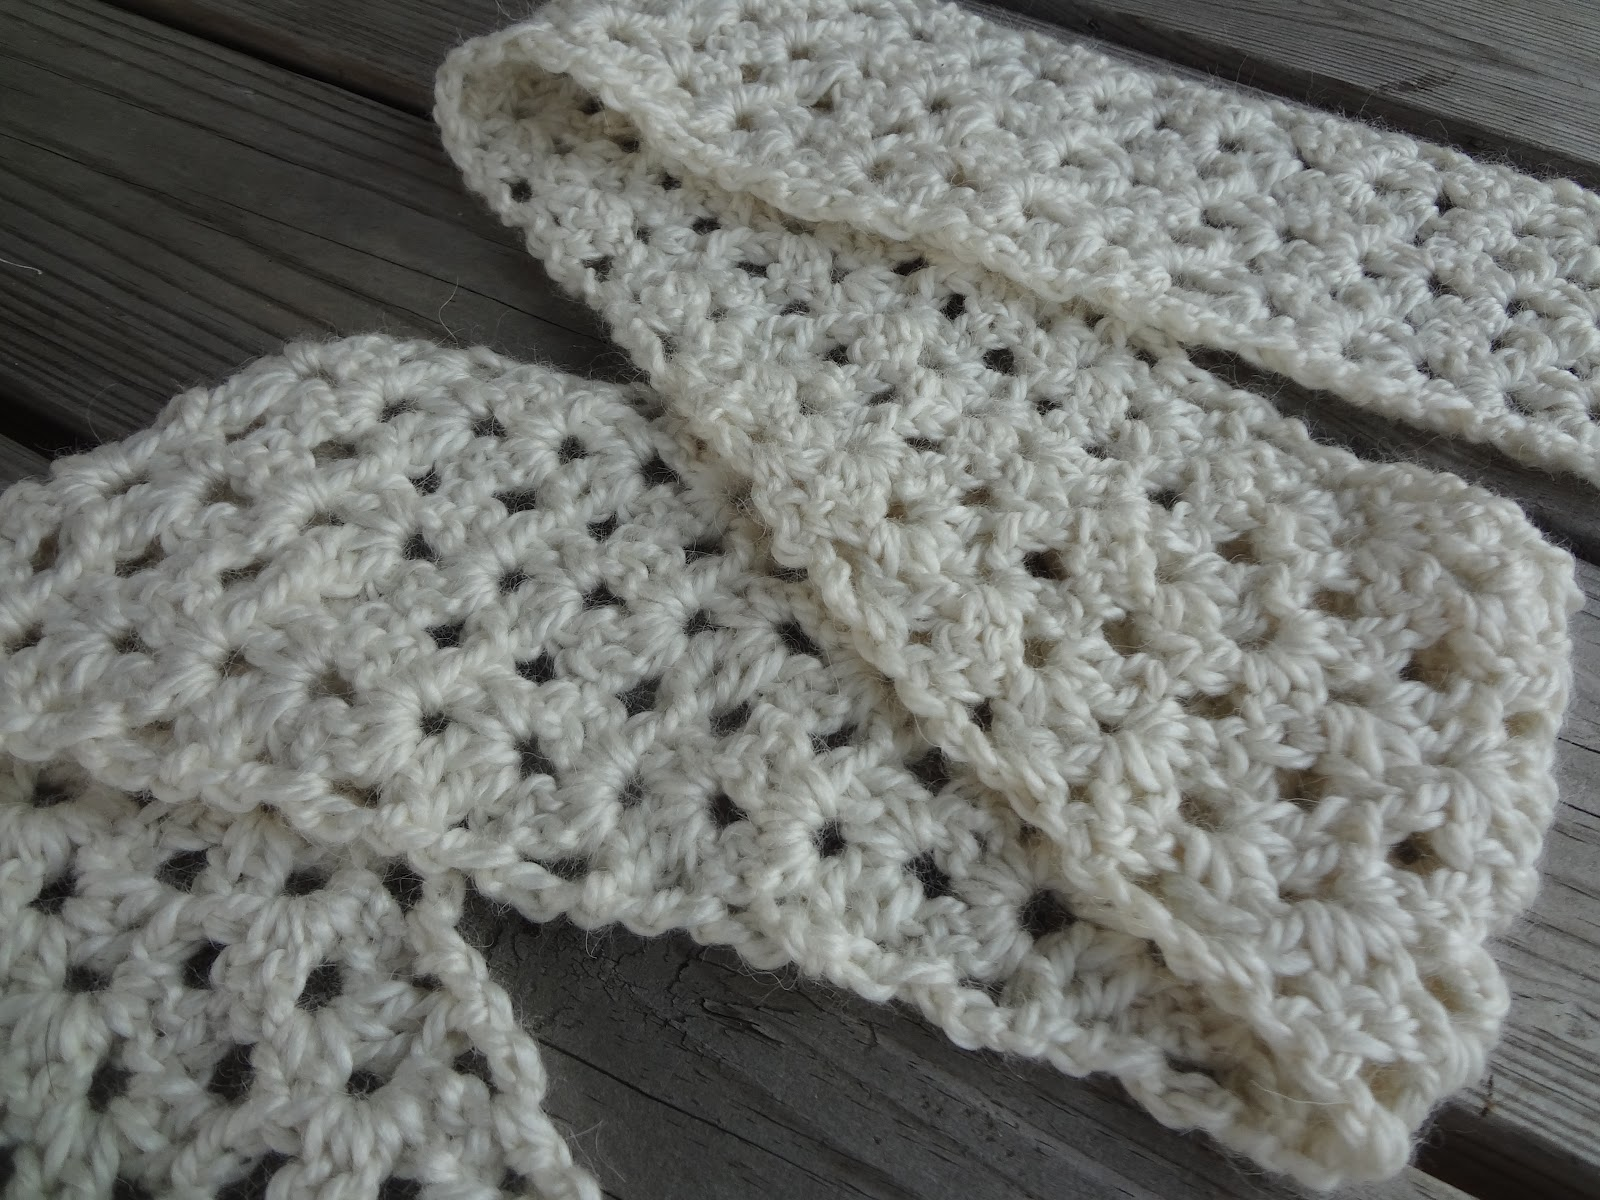 Crochet Stitches For Chunky Yarn : Fiber Flux: Free Crochet Pattern...Vanilla Bean Scarf!